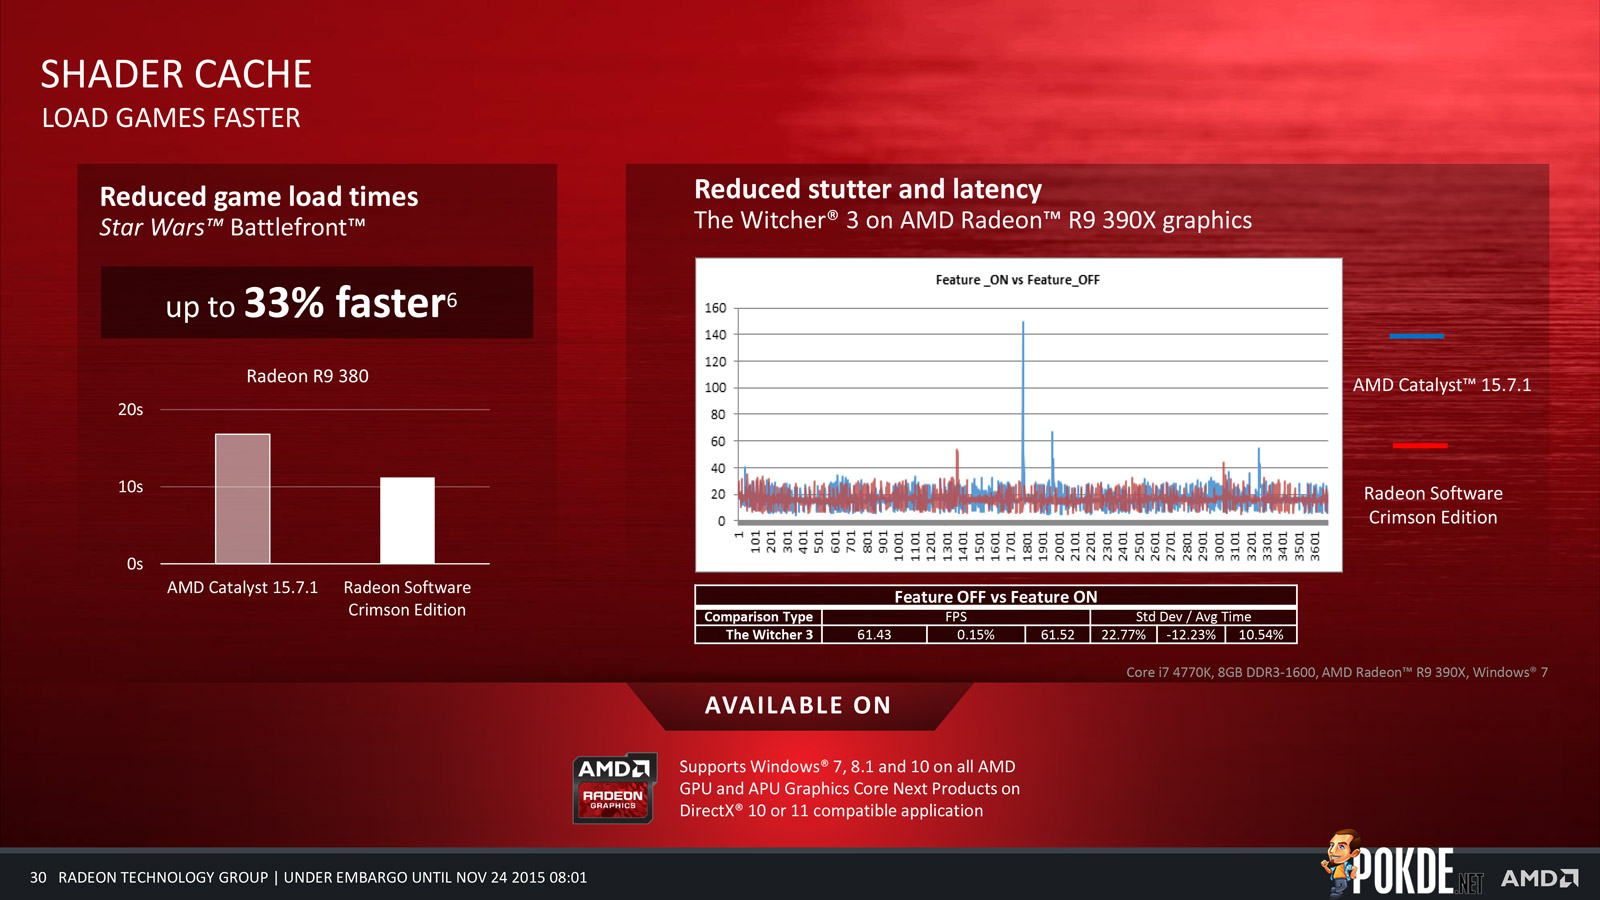 Radeon Technologies Group launched their first product today